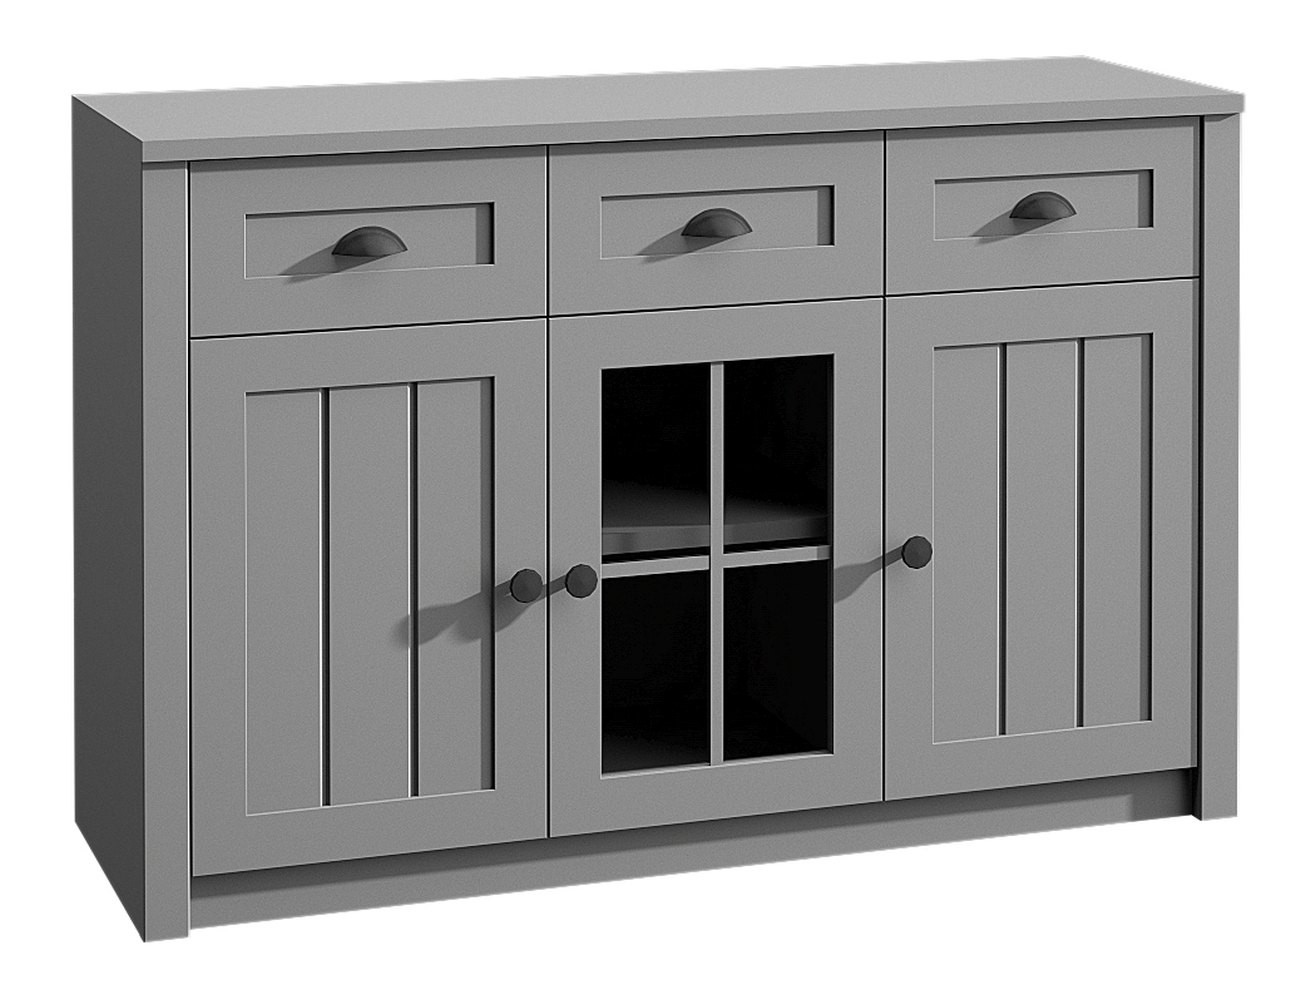 Kommode Segnas 01, Farbe: Grau – 88 X 130 X 43 Cm (h X B X T) Throughout Most Recent Knoxville Sideboards (View 15 of 20)